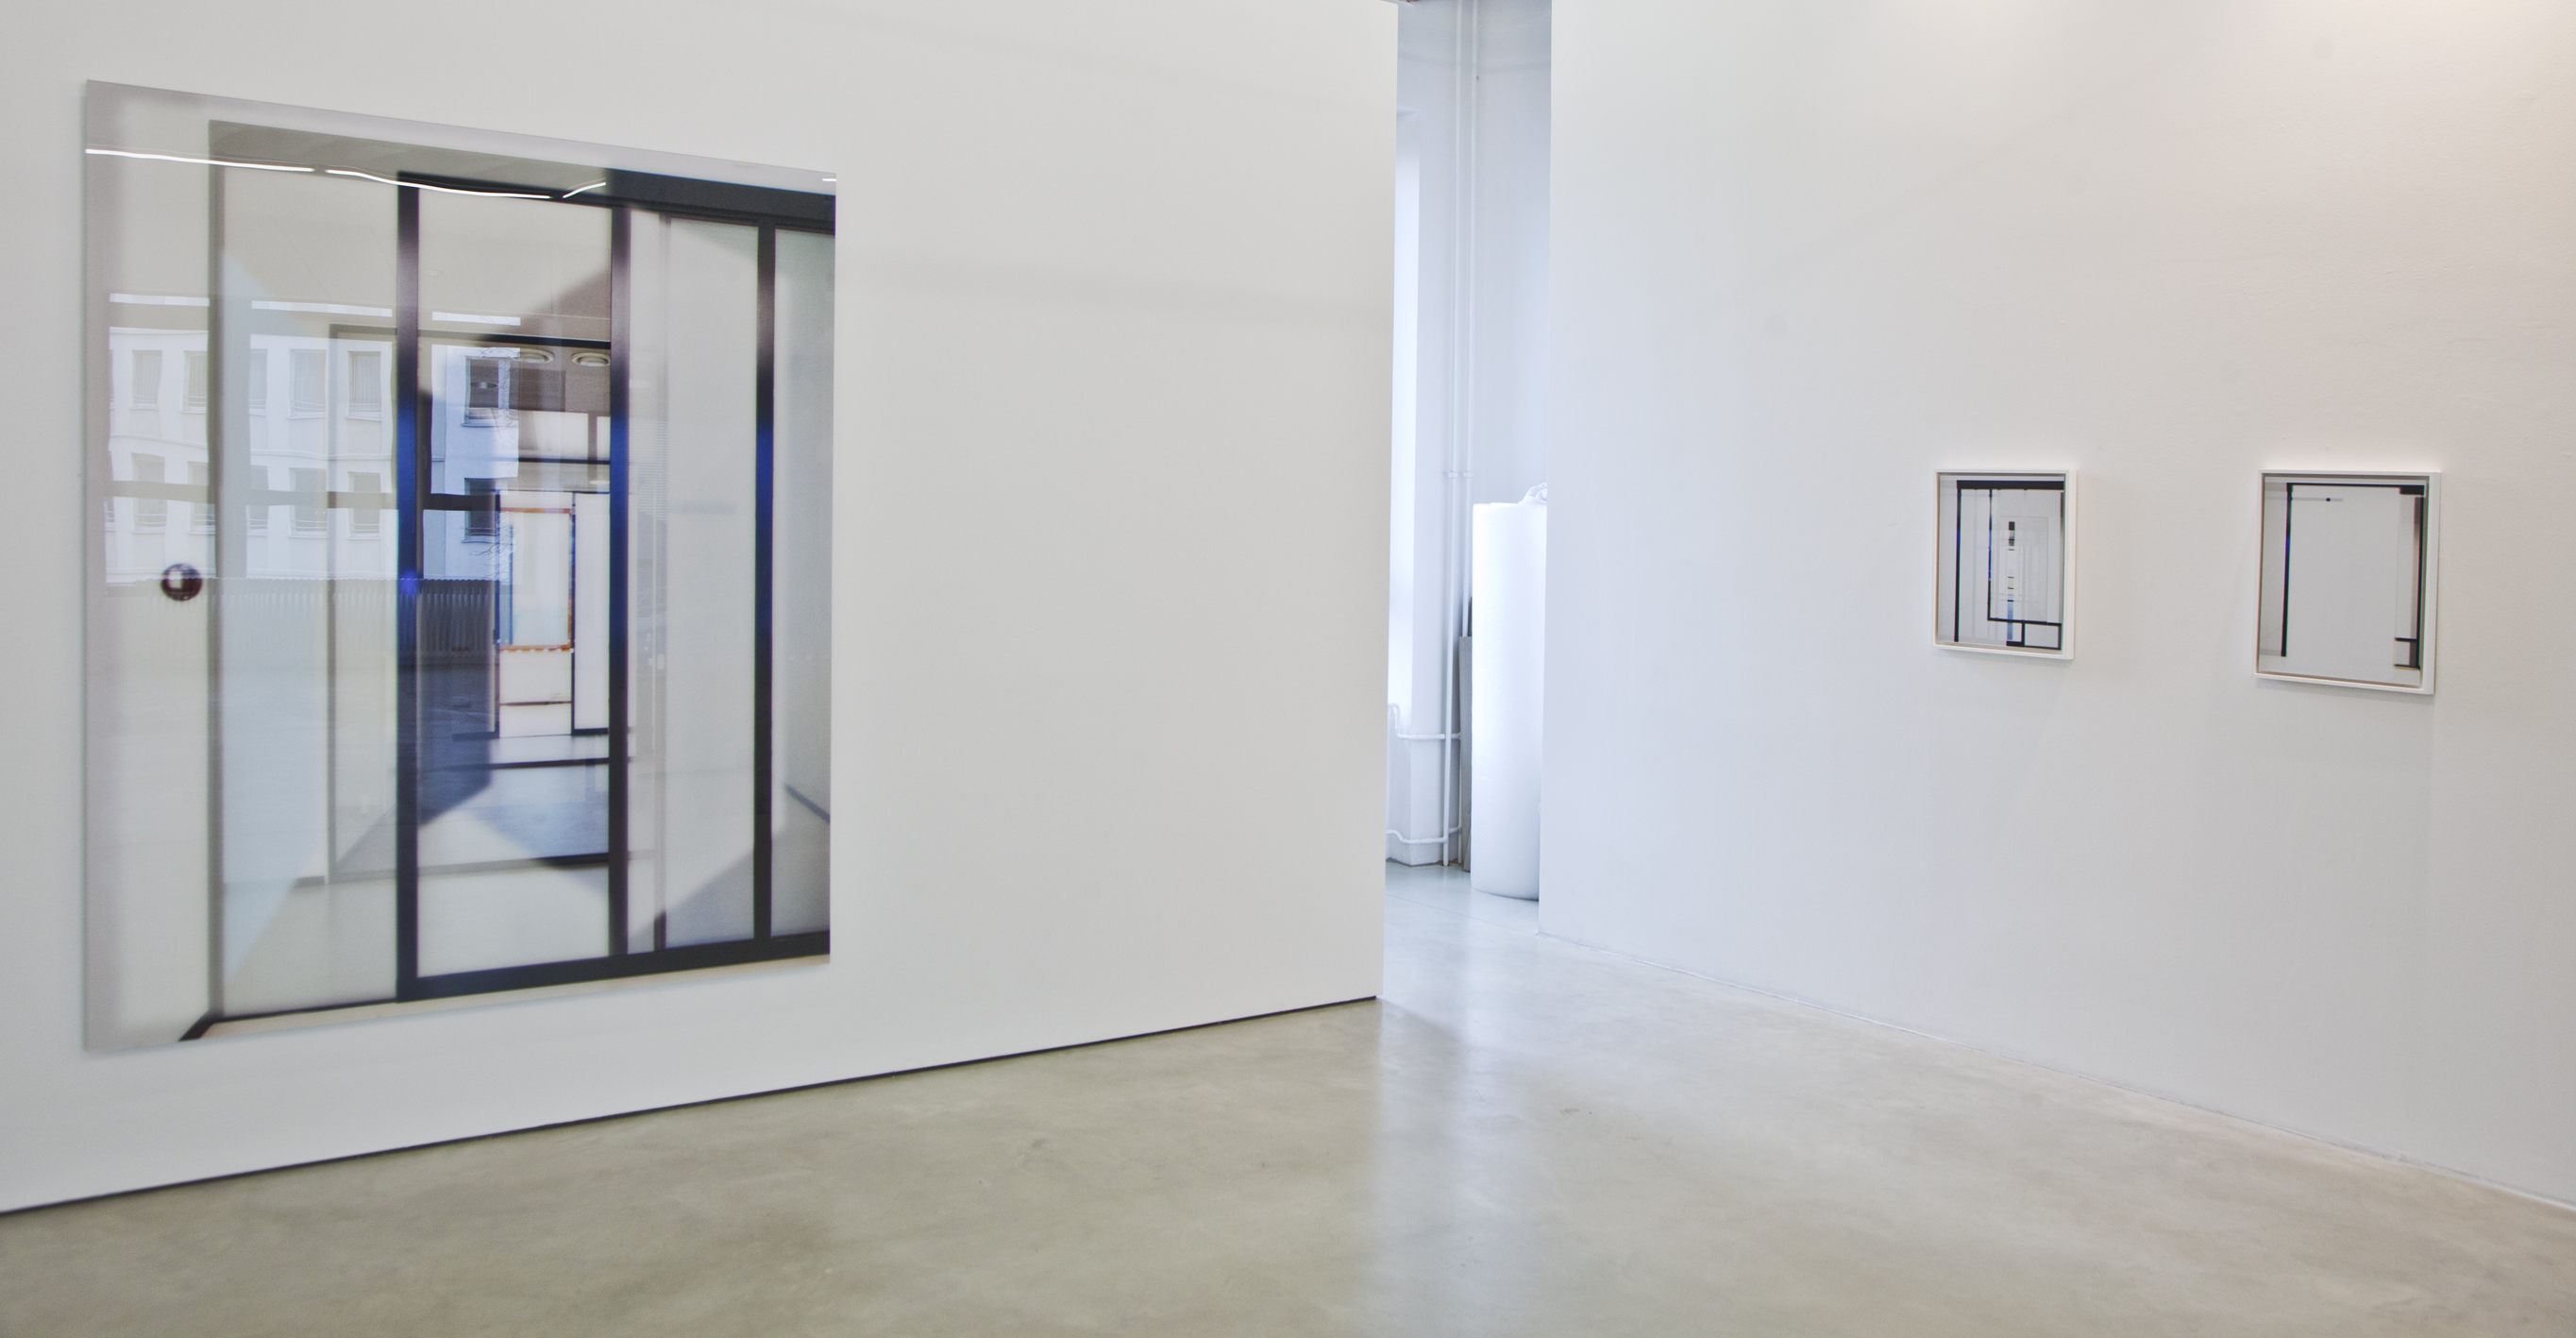 TILA/Spatial Changes, Solo Exhibtion at Gallery Taik Persons, Berlin, 2014